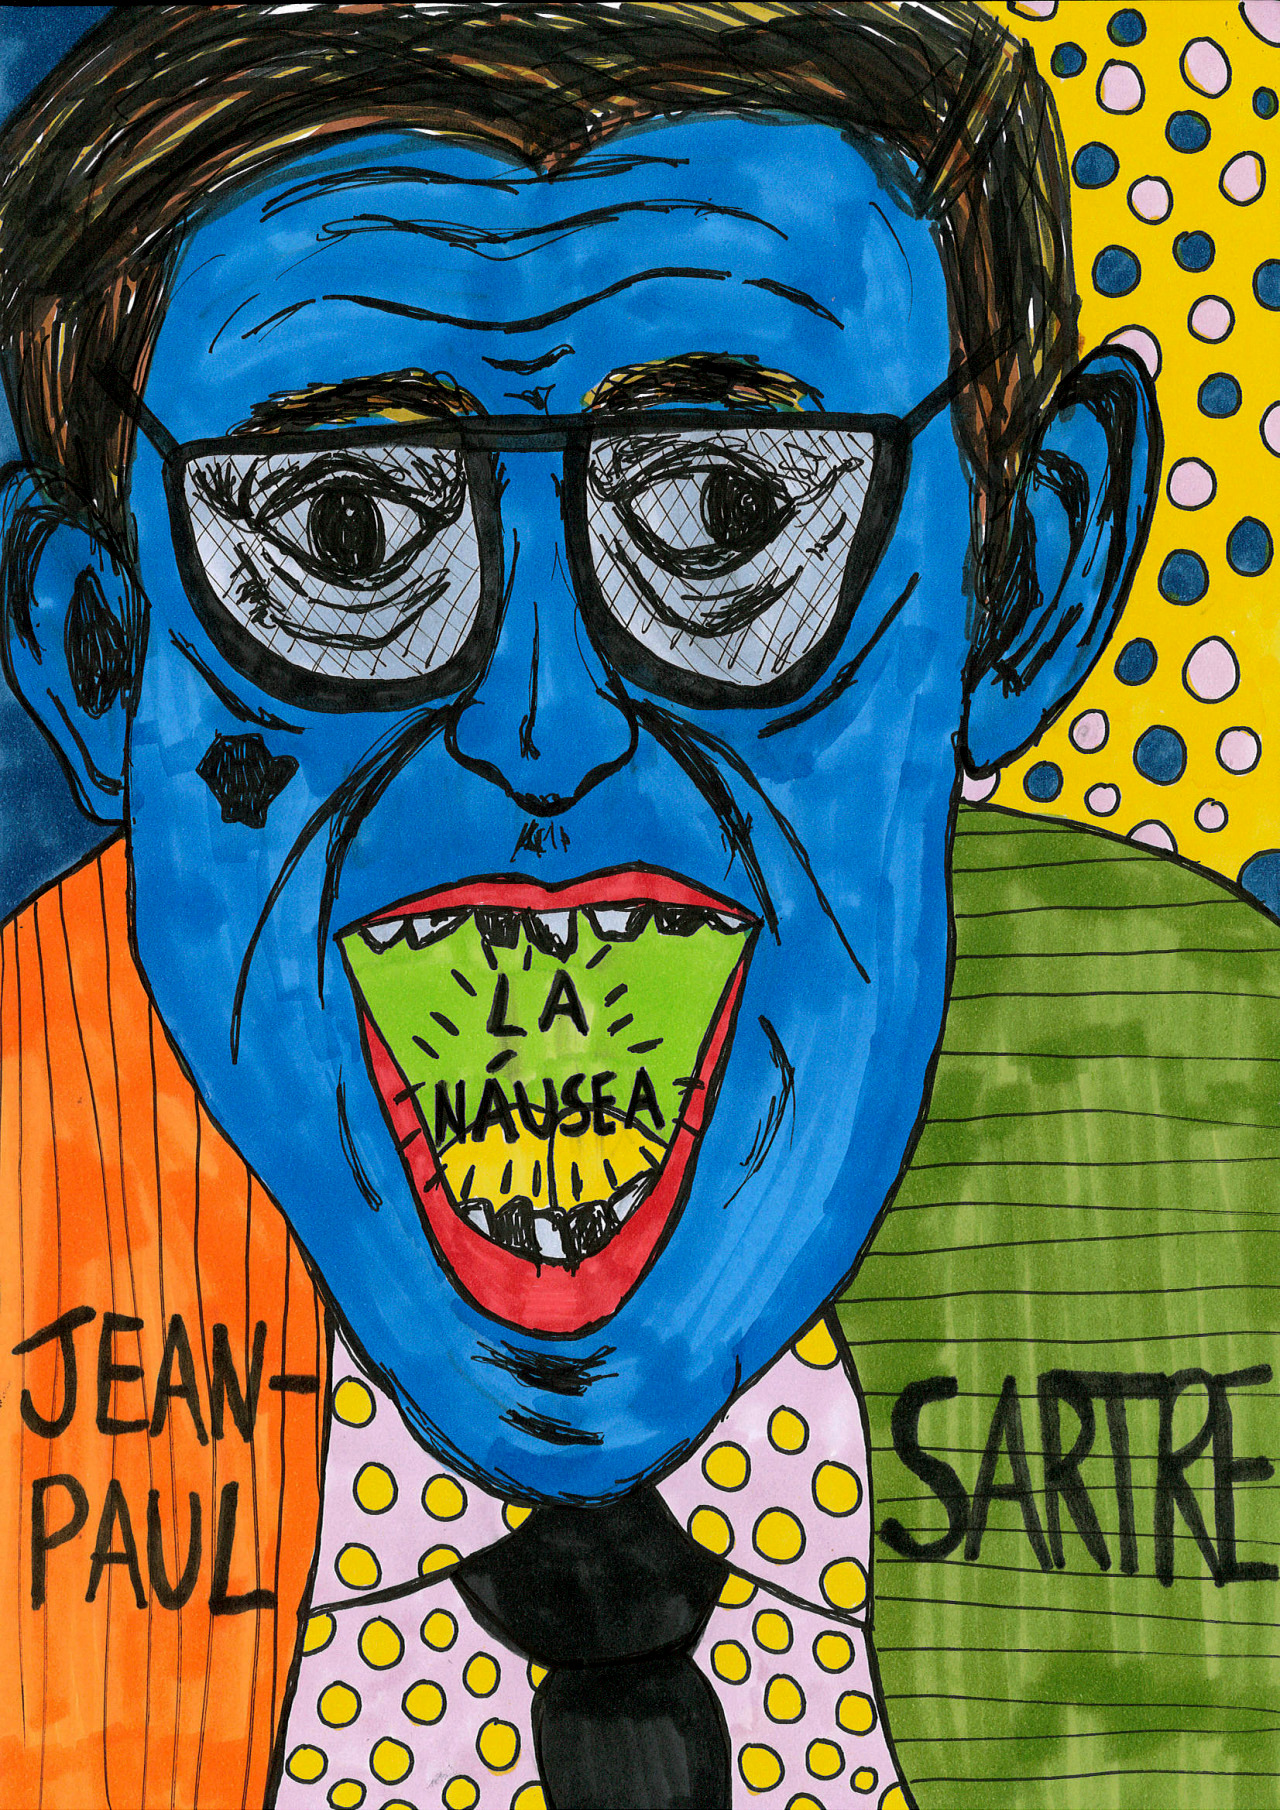 """""""Jean-Paul Sartre"""" , 2013   Marker and pen on paper, 21 x 29.7 cm"""